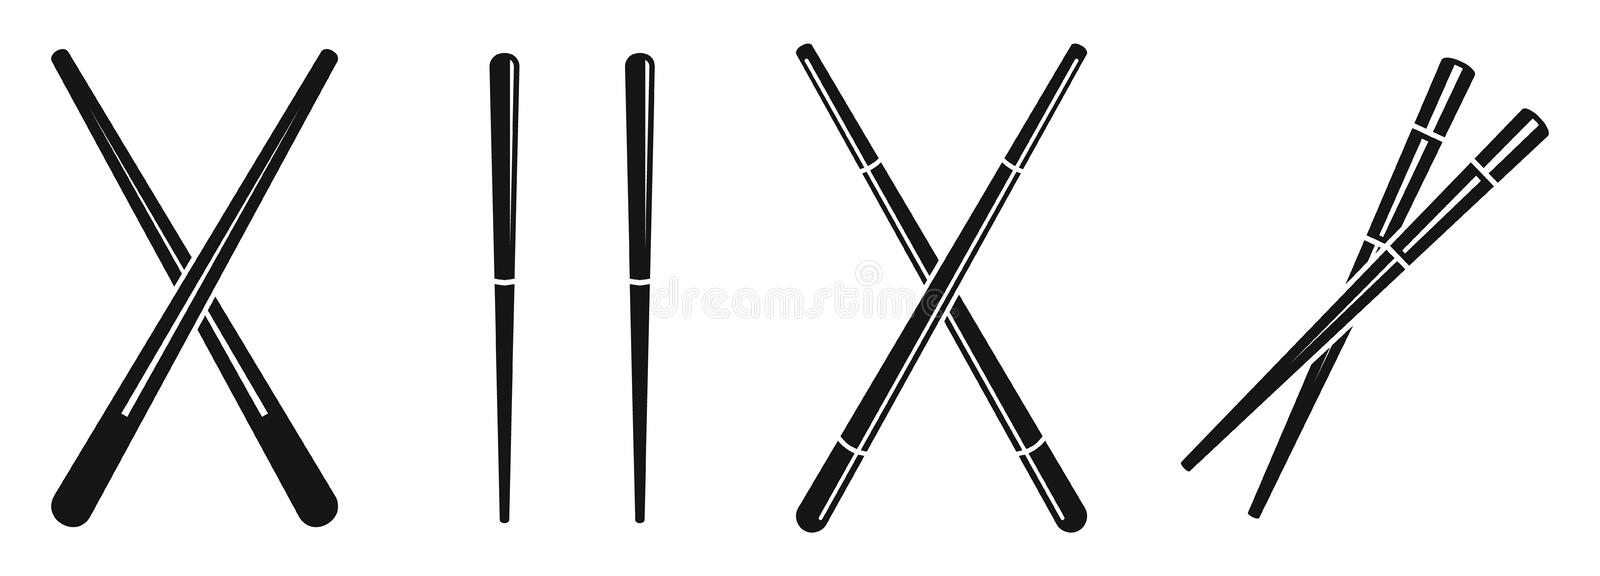 Japanese chopsticks icons set, simple style. Japanese chopsticks icons set. Simple set of japanese chopsticks vector icons for web design on white background stock illustration